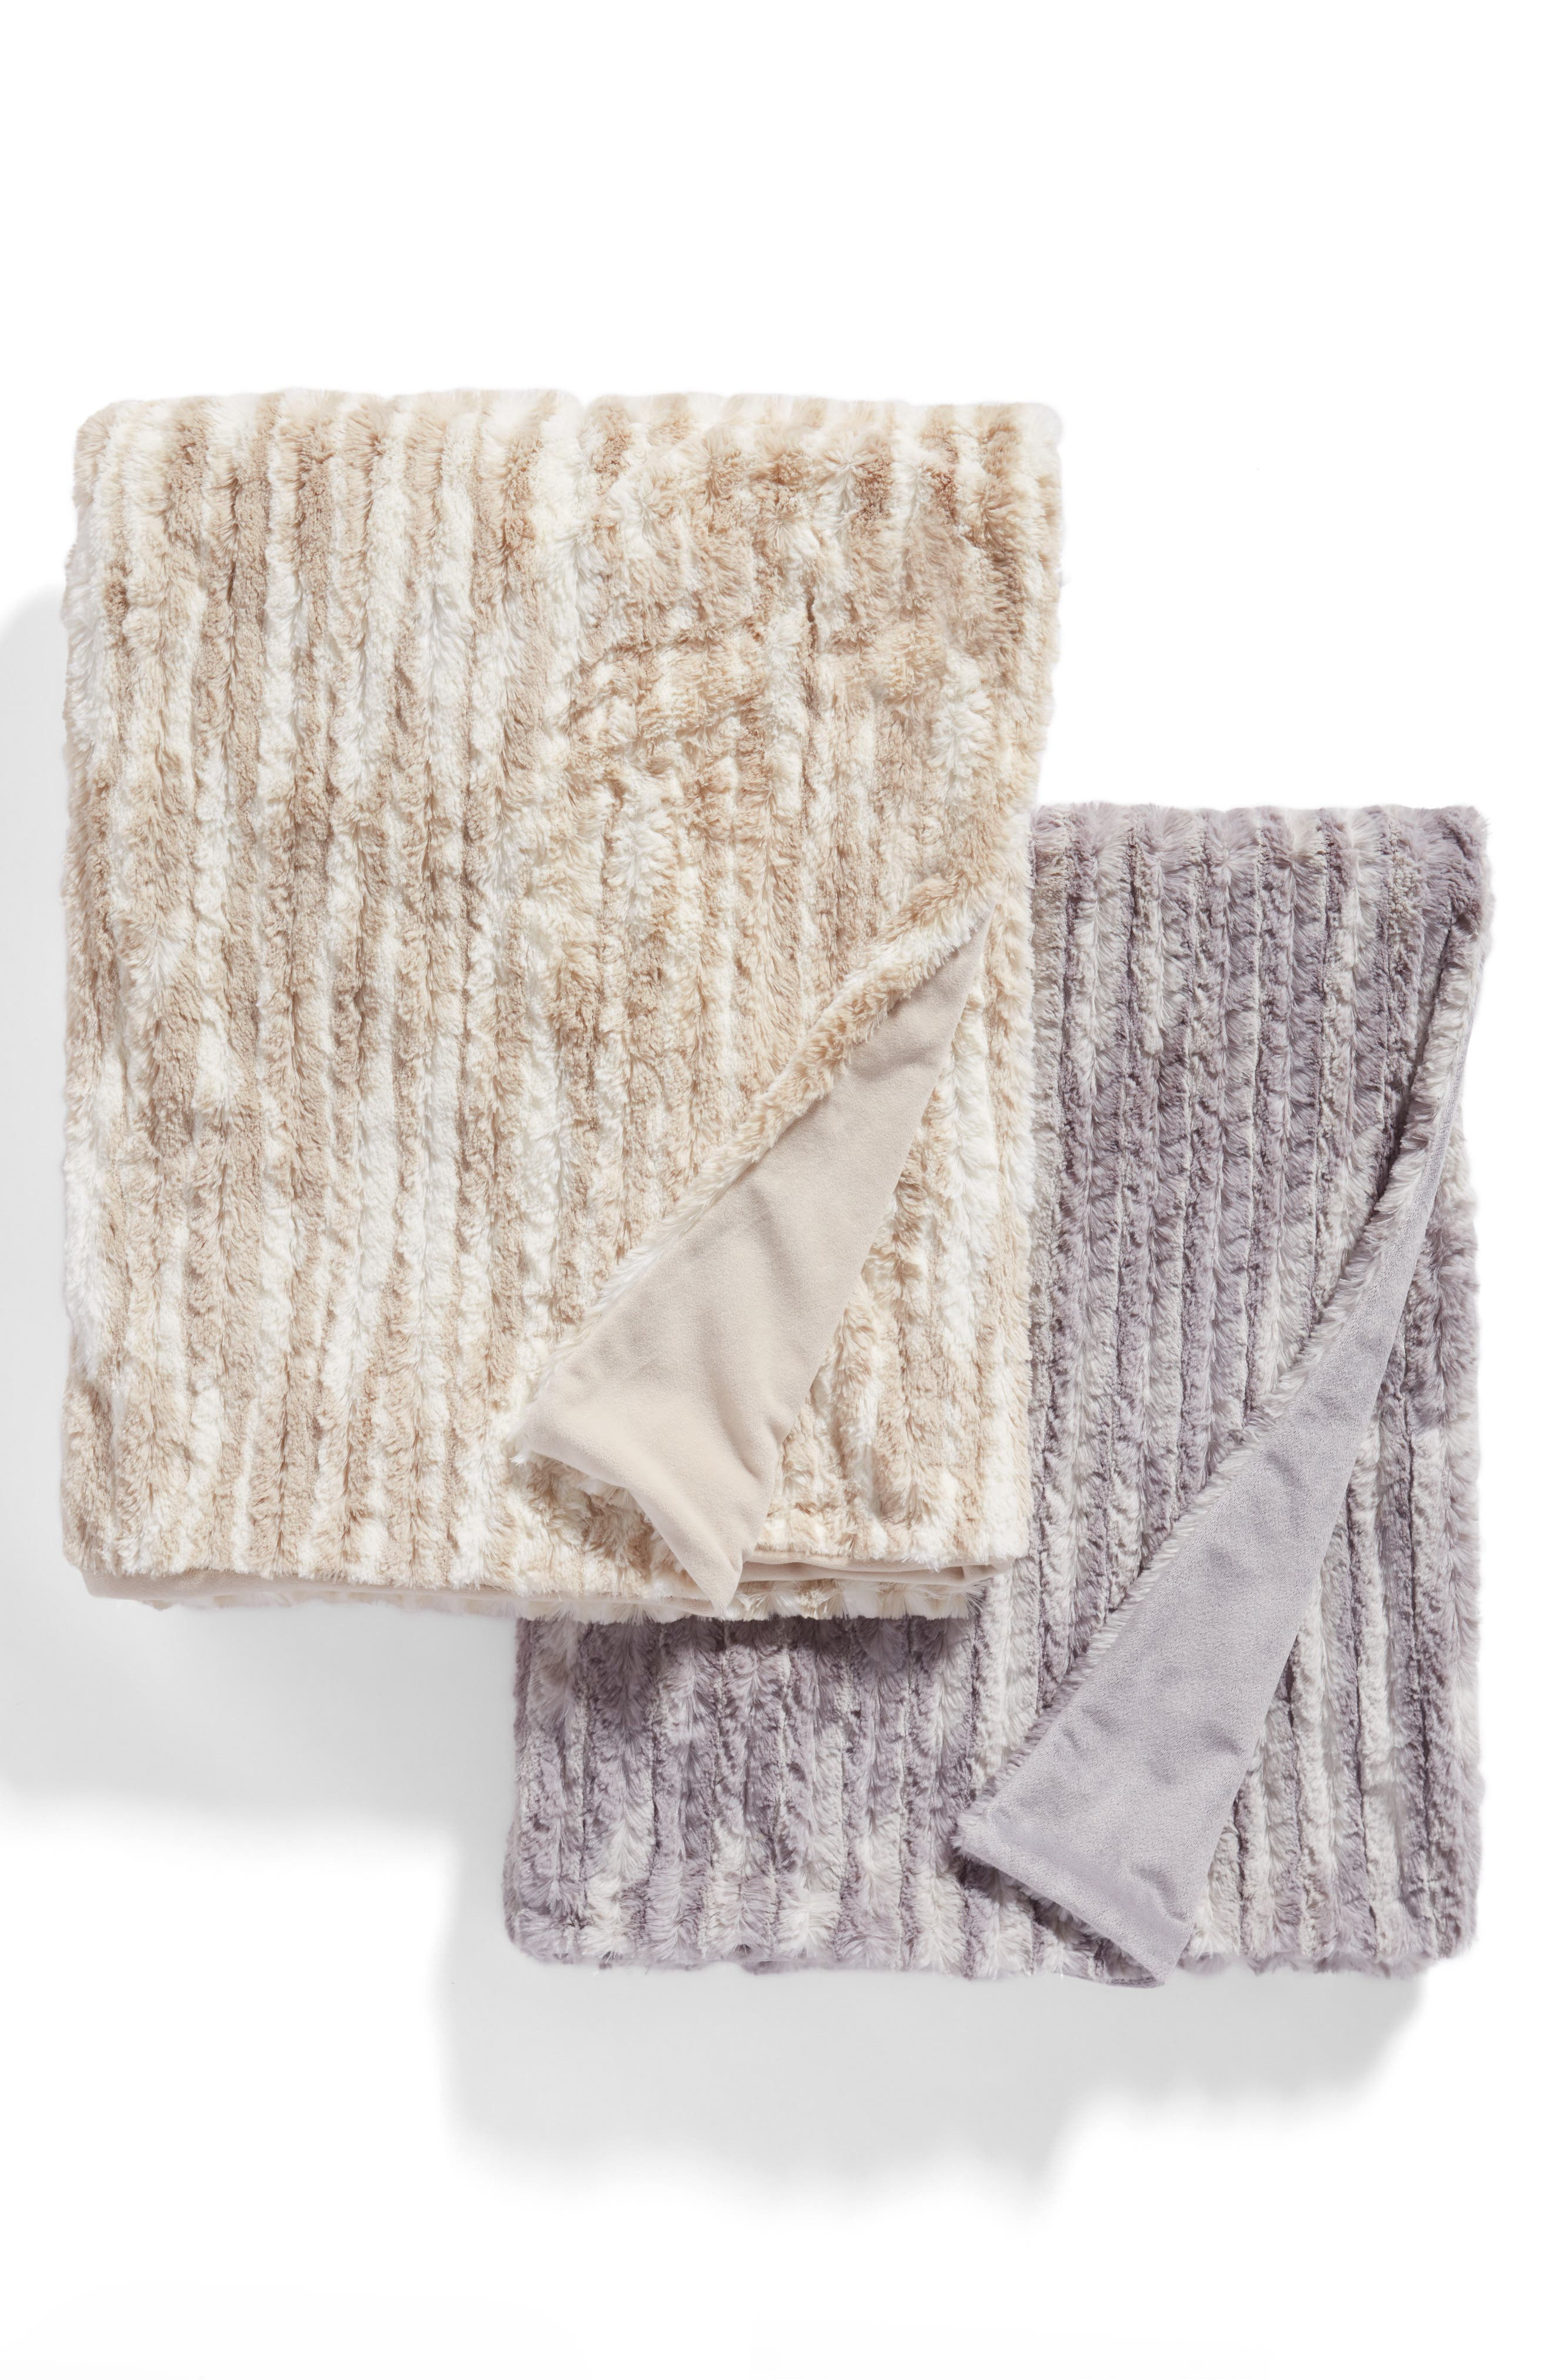 Soft Ribbed Plush Throw,                             Alternate thumbnail 3, color,                             BEIGE OATMEAL PRINT